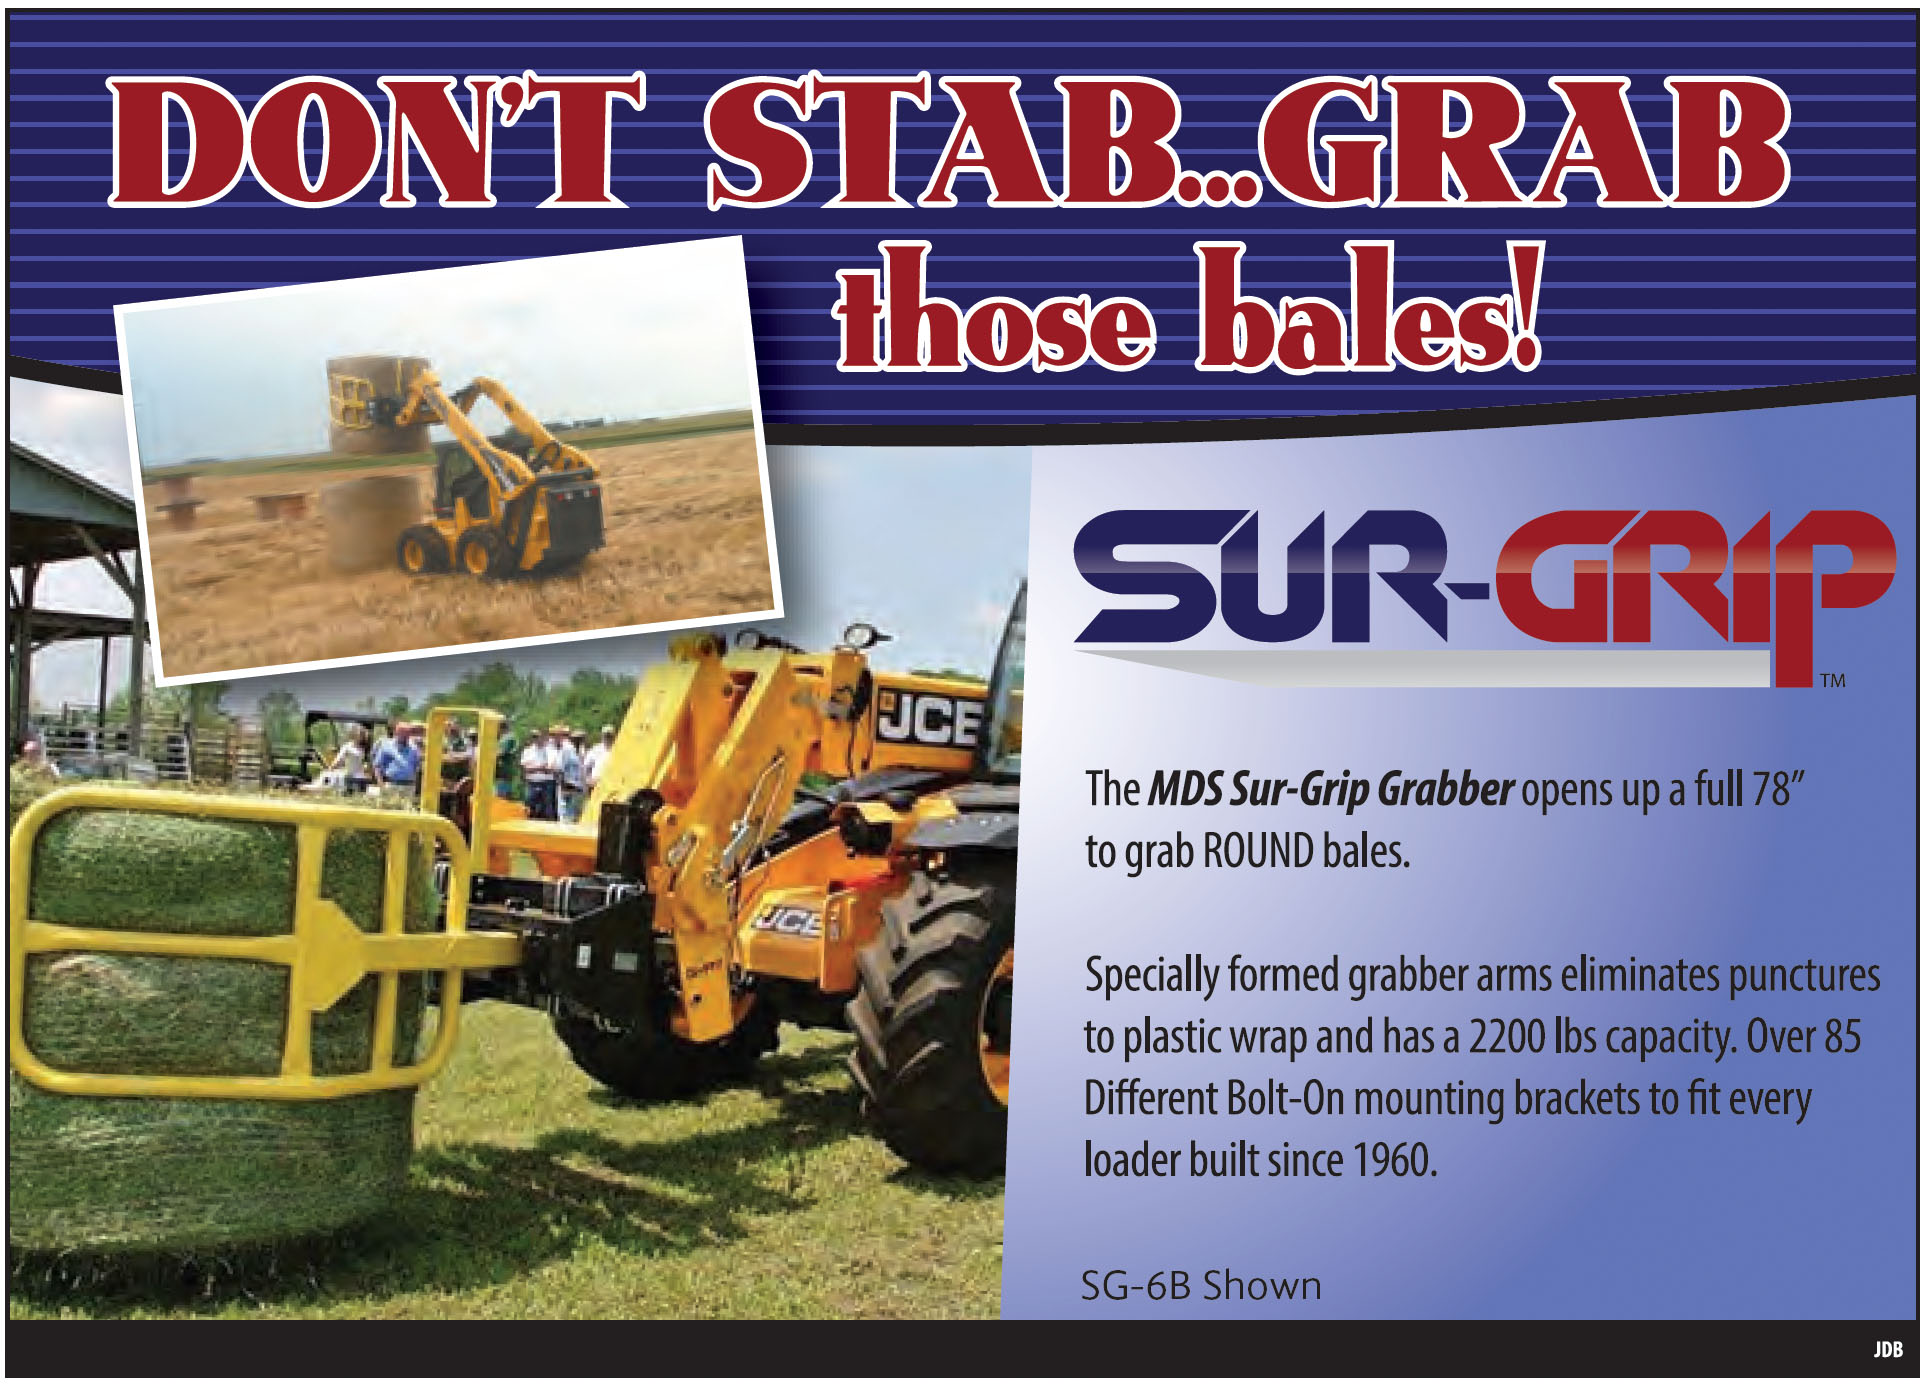 Bale grabbers for large round balers